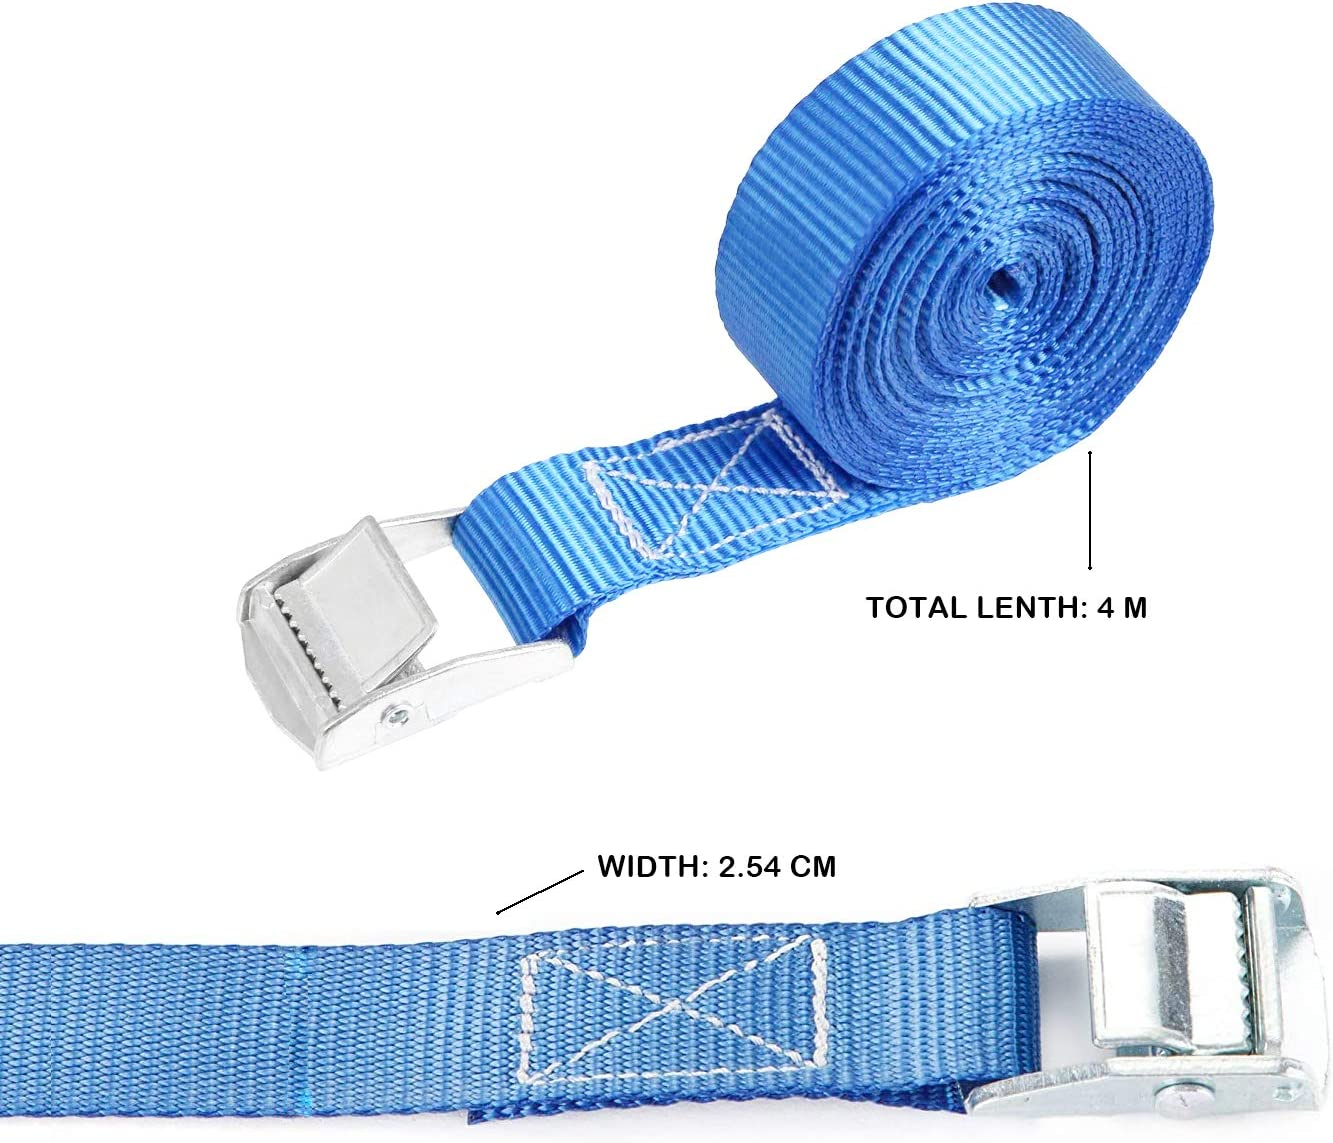 no Hooks SHUANG 2x 250 kg 4 m Ratchet tie down lashing straps Tensioning belt Load securing straps Heavy duty ratchet straps for Carriers Luggage Cargo